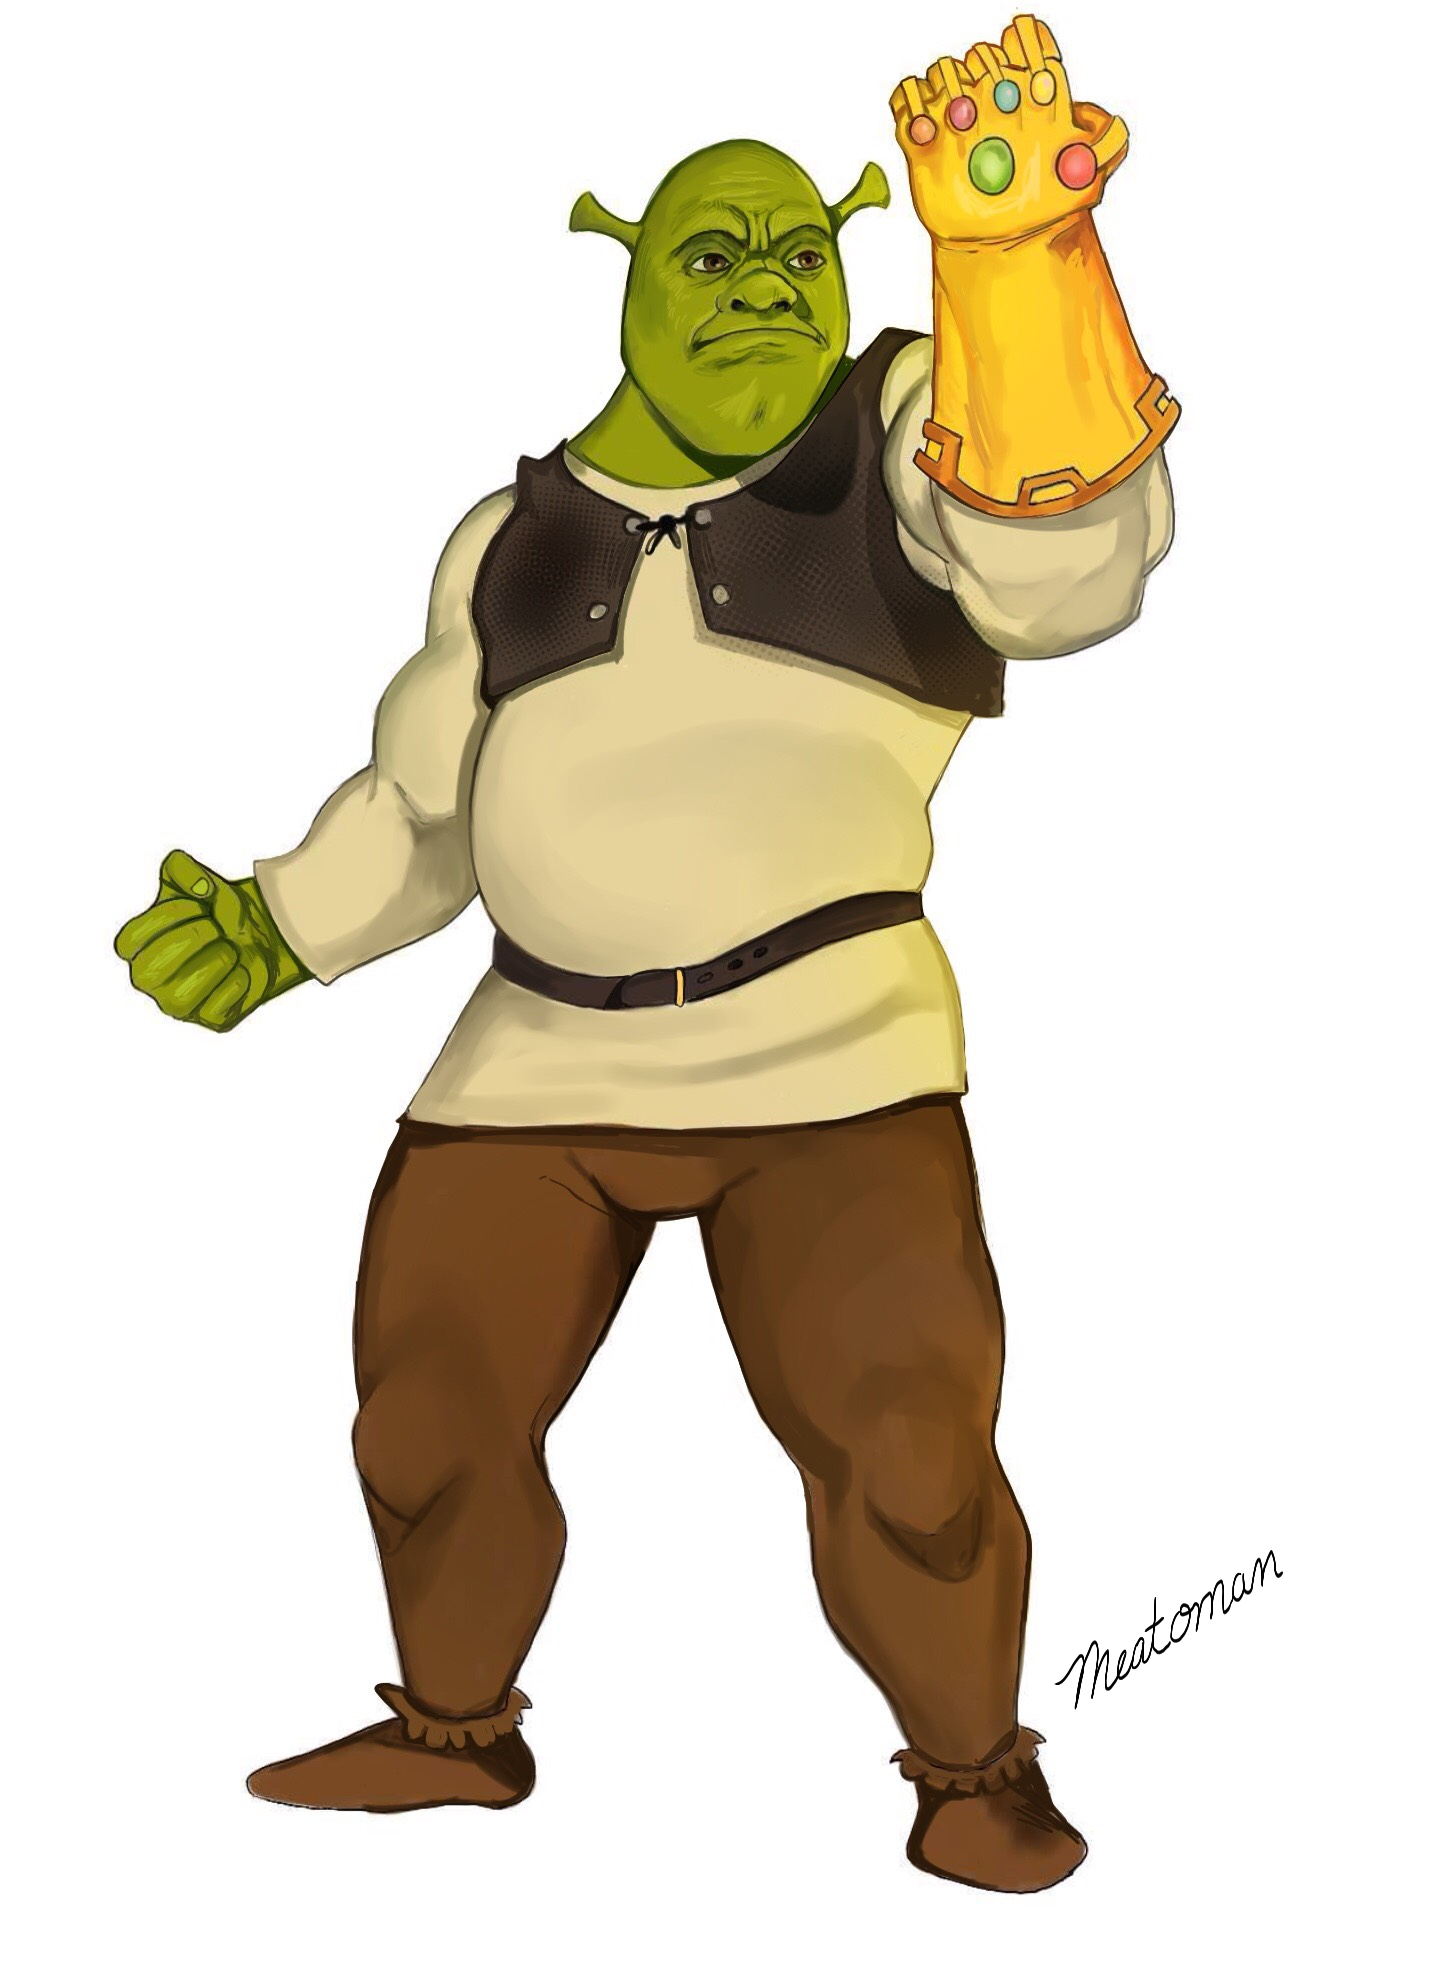 Shrek holding the Infinity Guantlet by Meatoman on Newgrounds